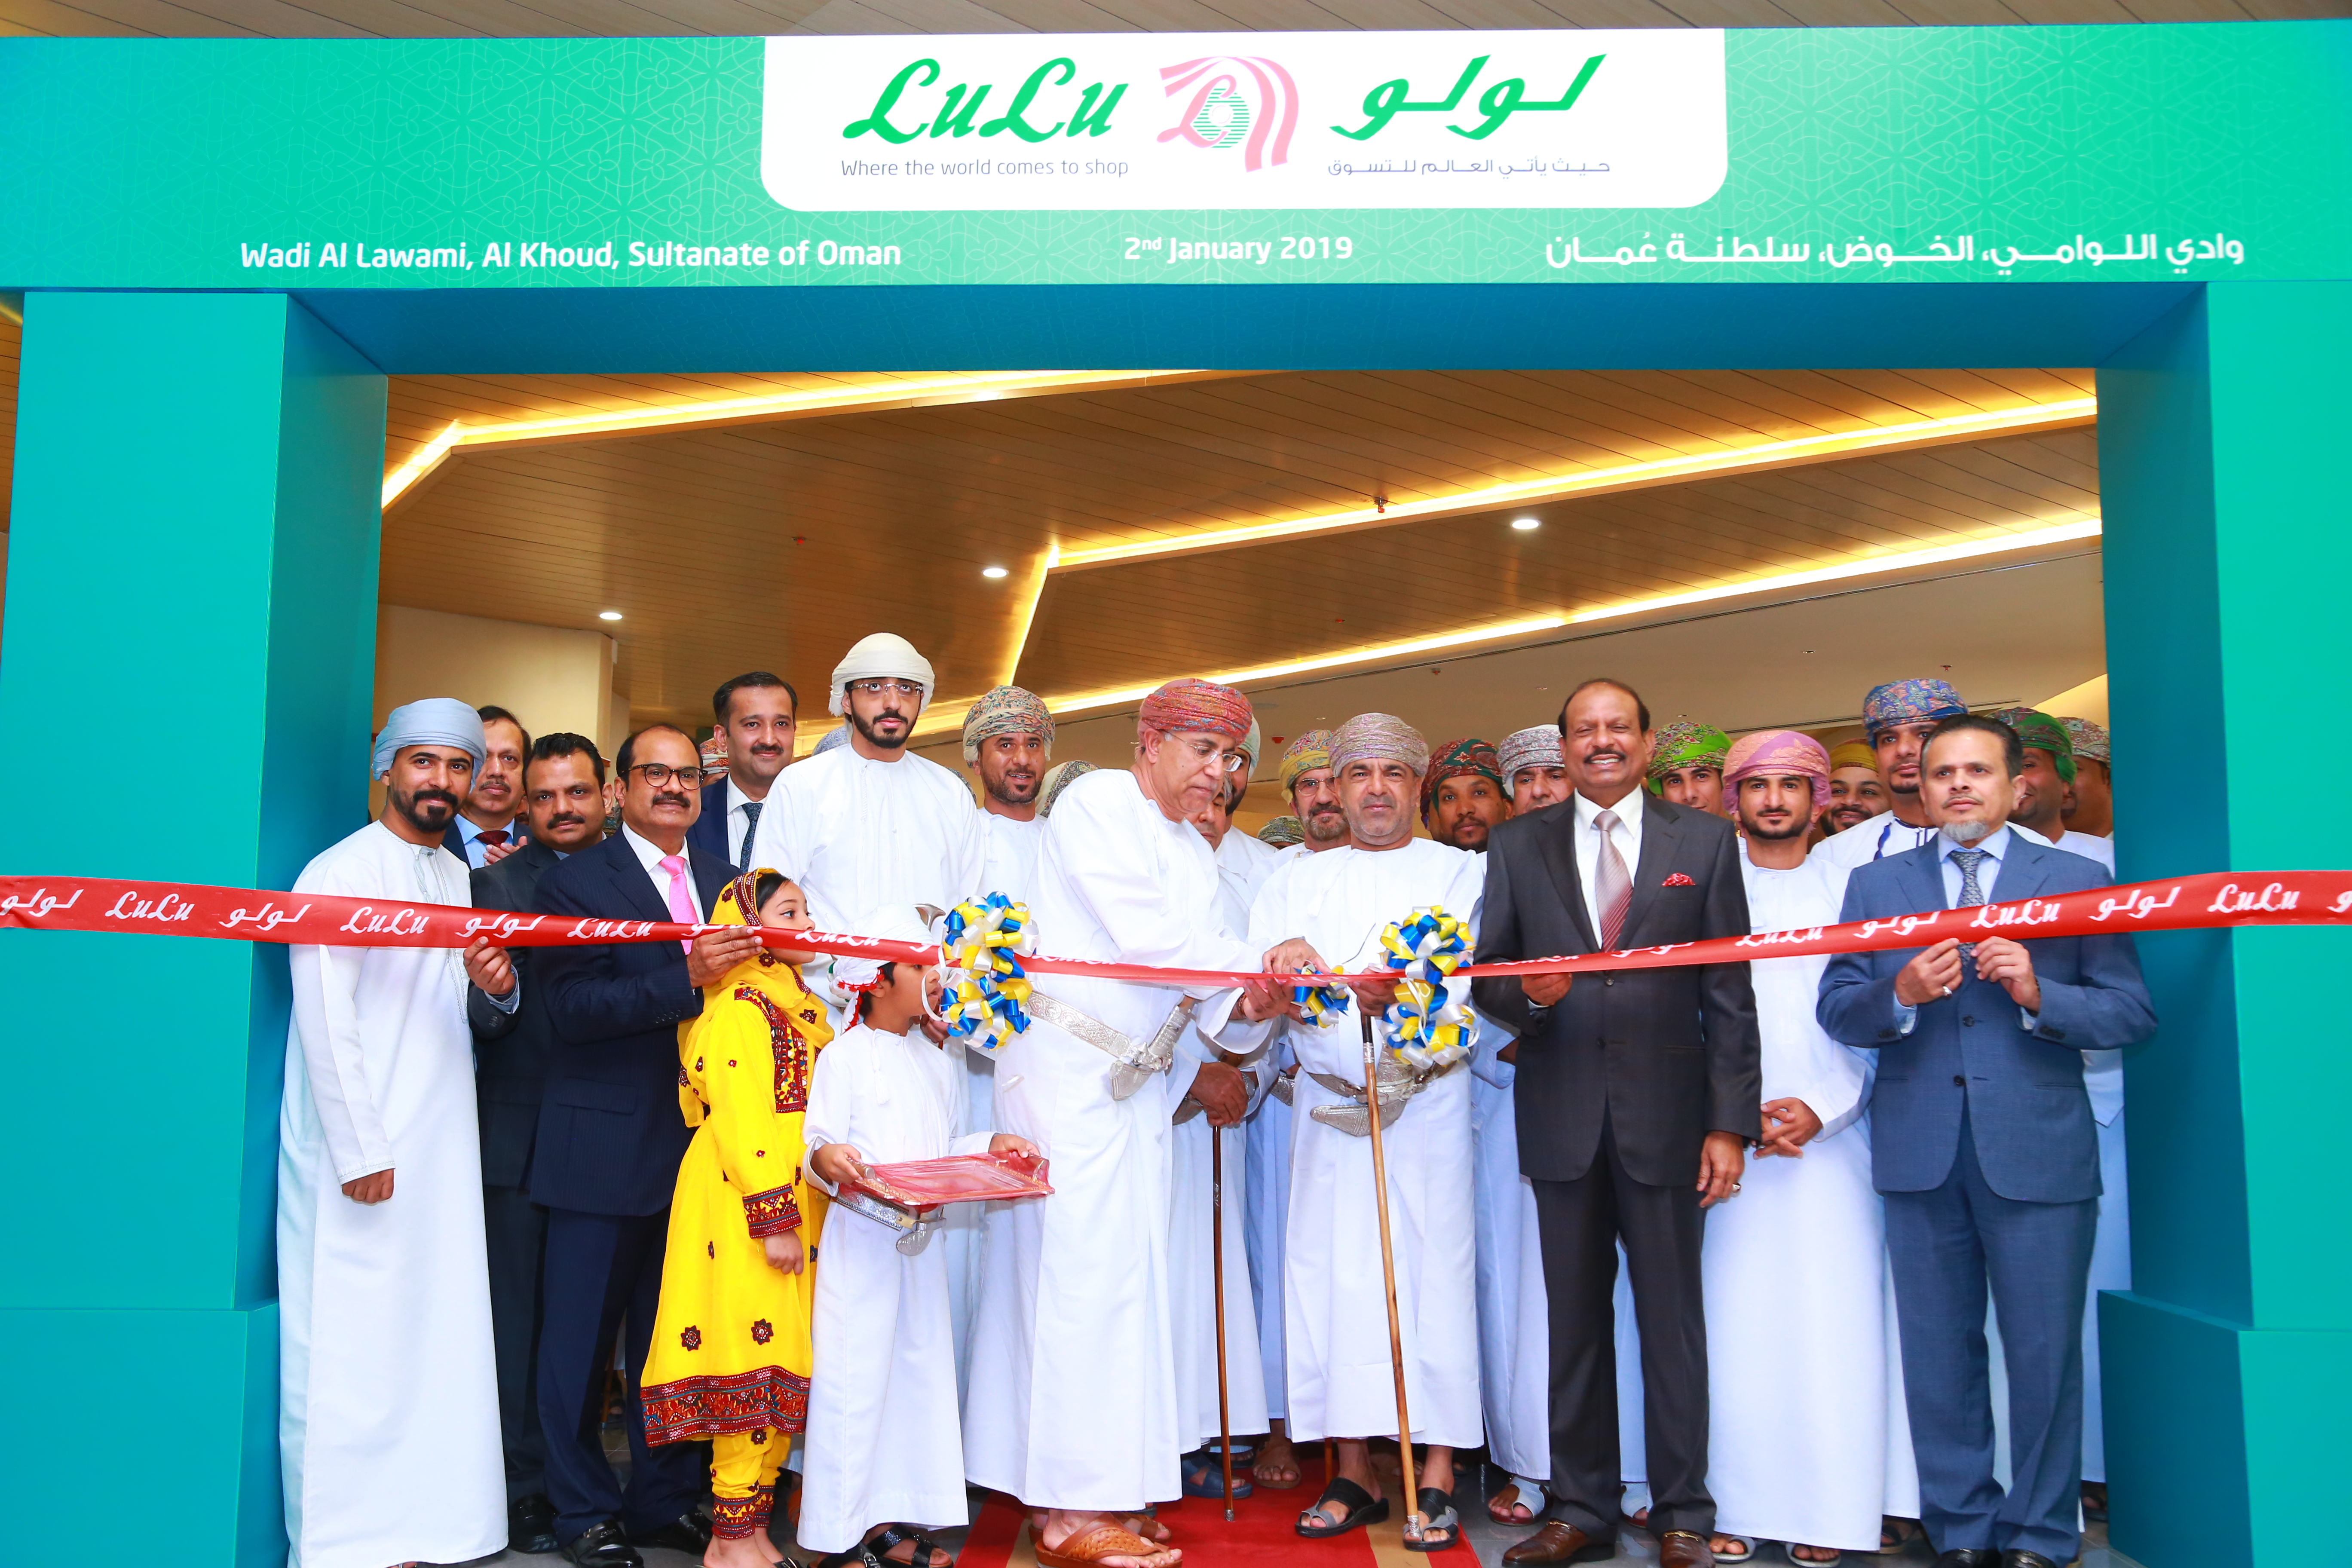 LuLu Hypermarket has opened its new store at Wadi Al Lawami, Al Khoudh, Oman